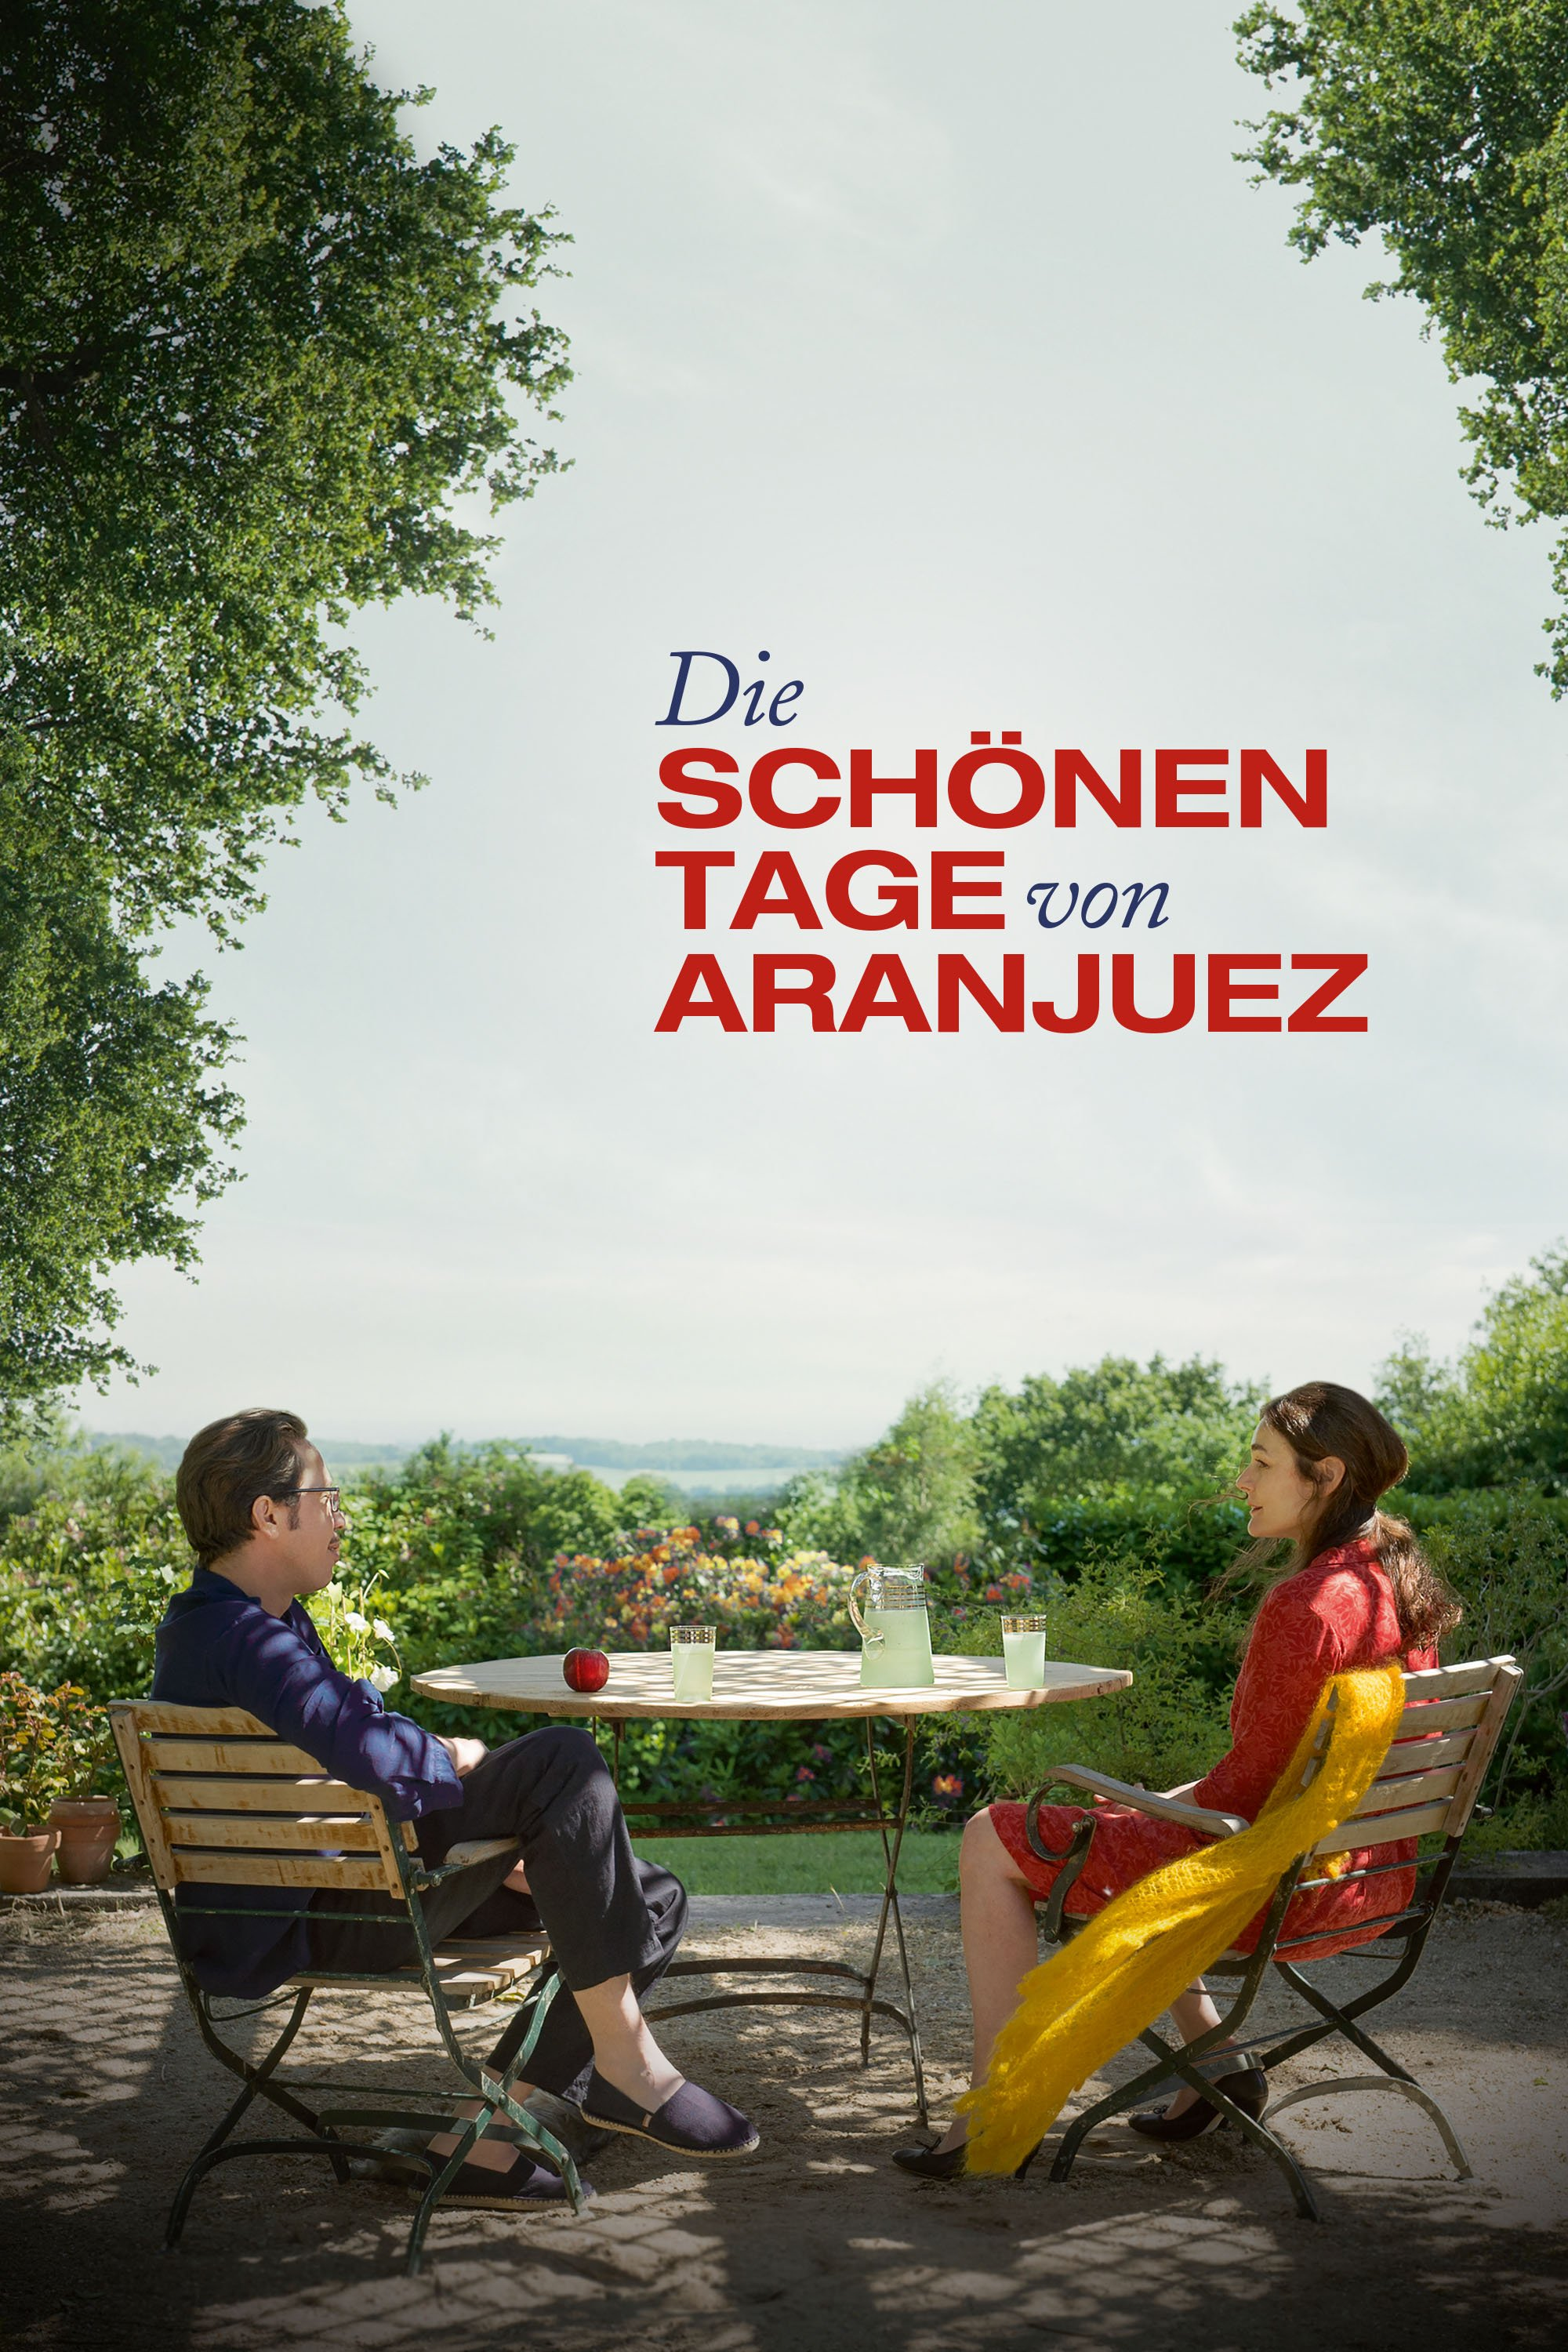 Die schönen Tage von Aranjuez (The Beautiful Days of Aranjuez) stream